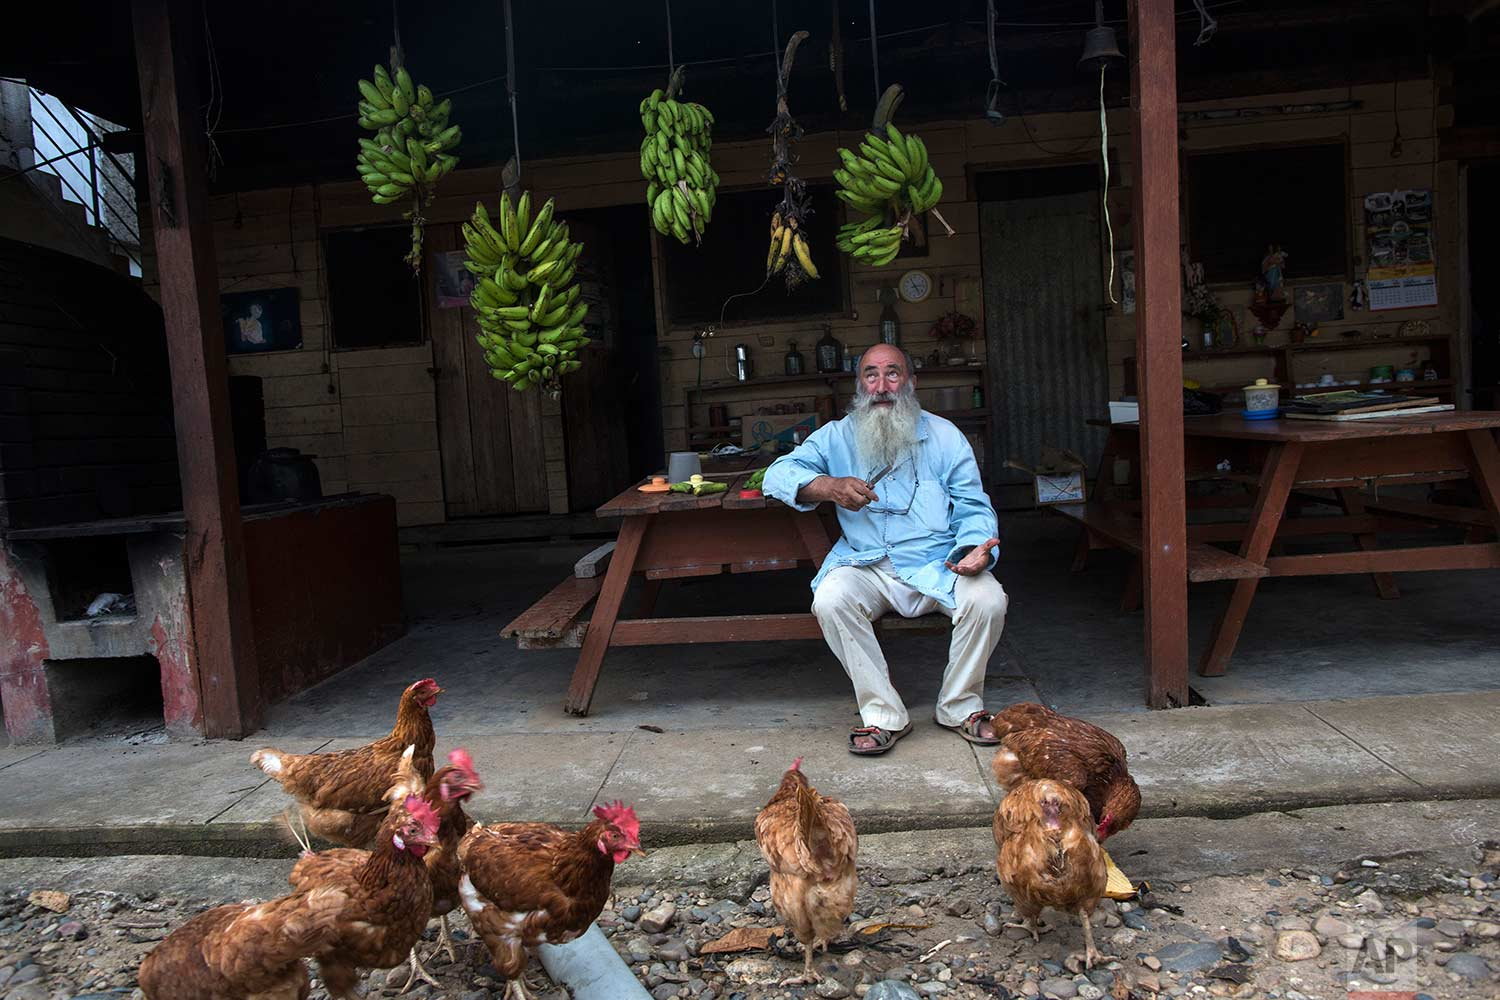 In this Jan. 10, 2018 photo, Father Pablo Zabala, better known as Padre Pablo, sits underneath bunches of bananas he has harvested while feeding a flock of chickens at the parish in Boca Colorado, part of Peru's Madre de Dios region. Zabala has lived in the Amazon for 24 years and spent the last 10 running a Catholic parish that works with about two dozen mining camps. He first traveled to the Amazon in 1978 when, as a young biologist, he collected butterflies and condors for his university's museum in Spain. (AP Photo/Rodrigo Abd) |  See these photos on AP Images